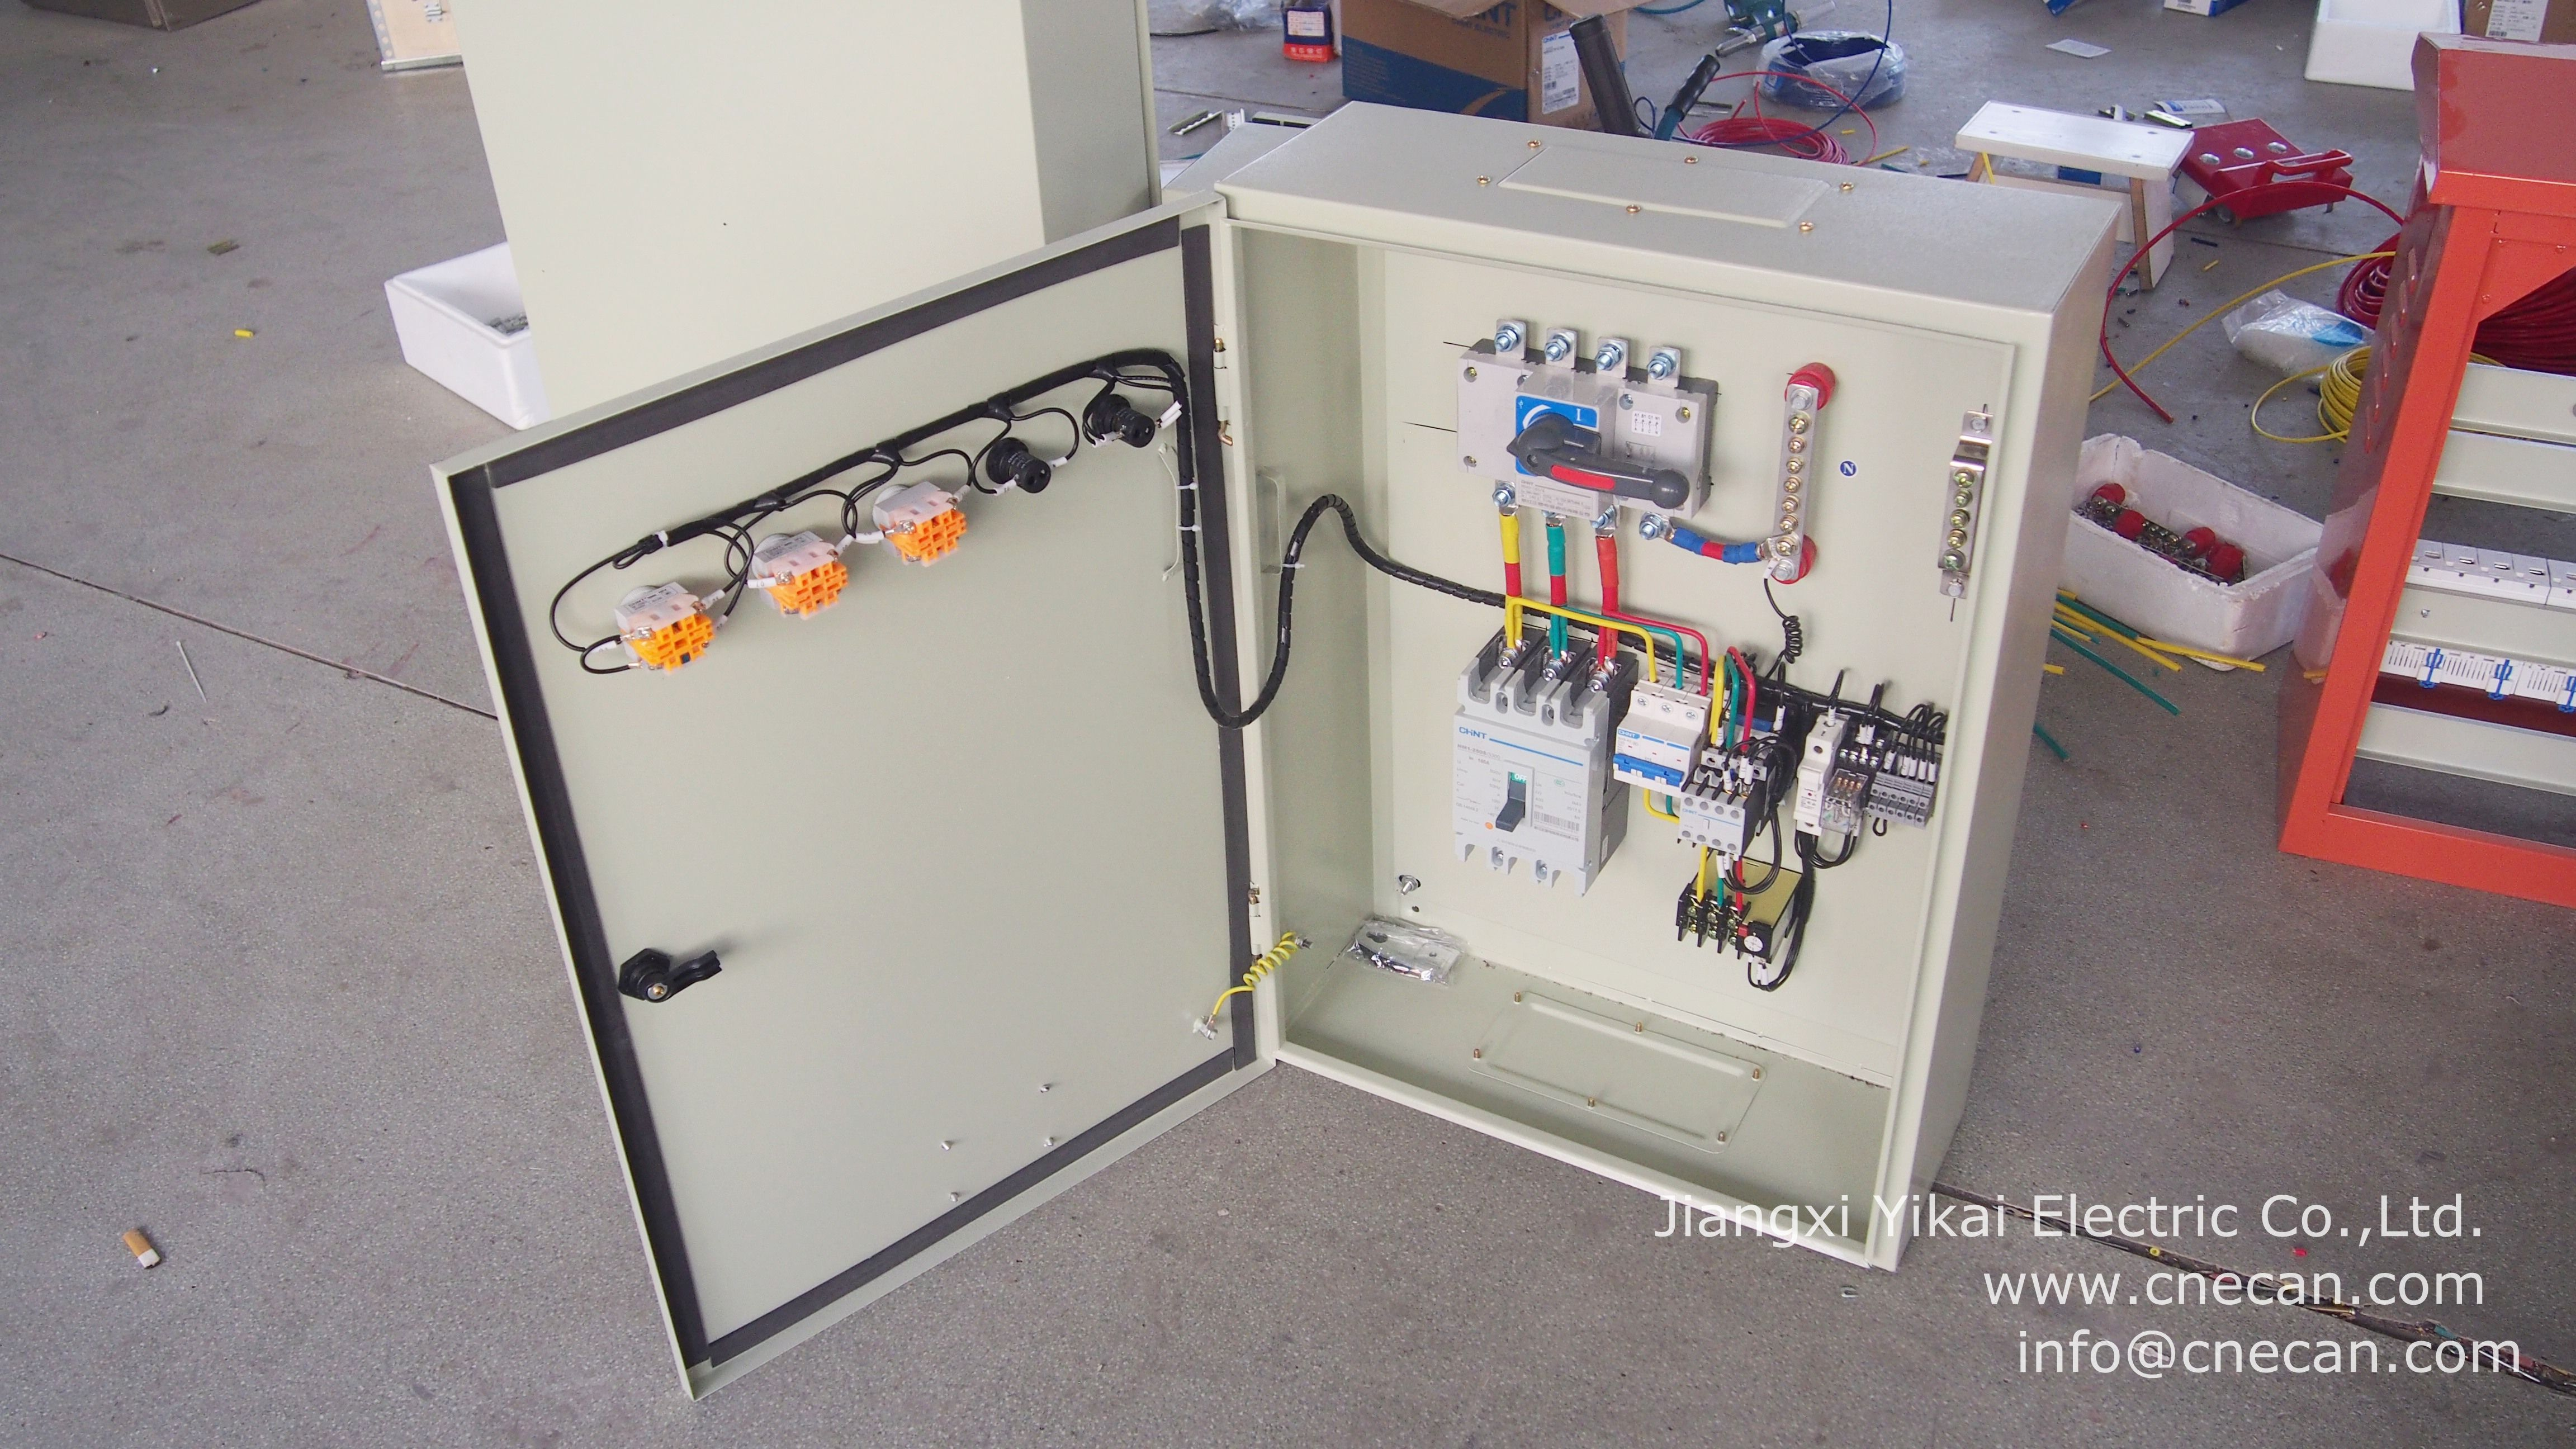 Jiangxi Yikai Electric Distribution Boards It Is Applicable For